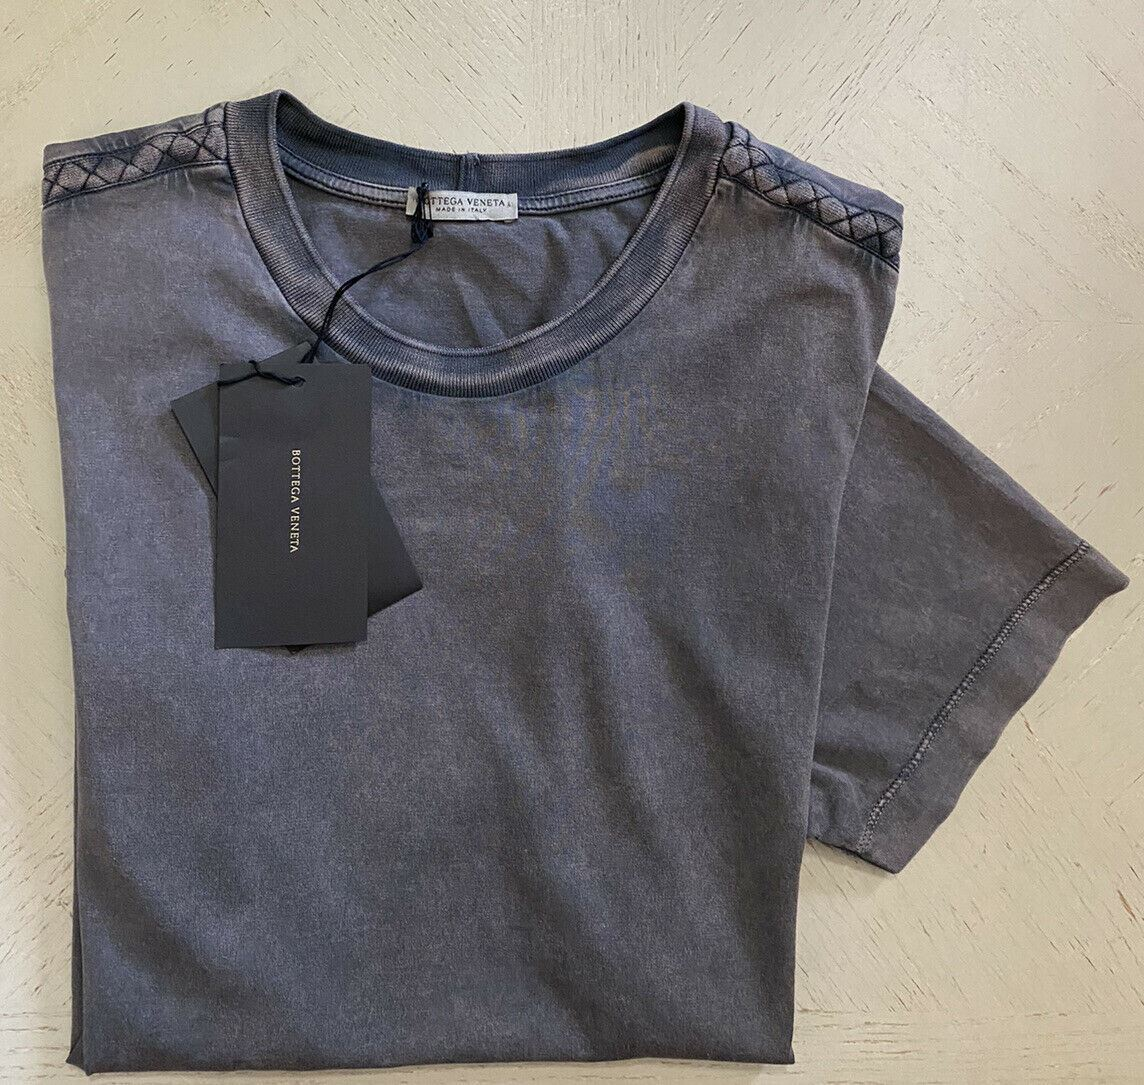 New $480 Bottega Veneta Mens Short Sleeve T Shirt Medium Gray L US ( 52 Eu )